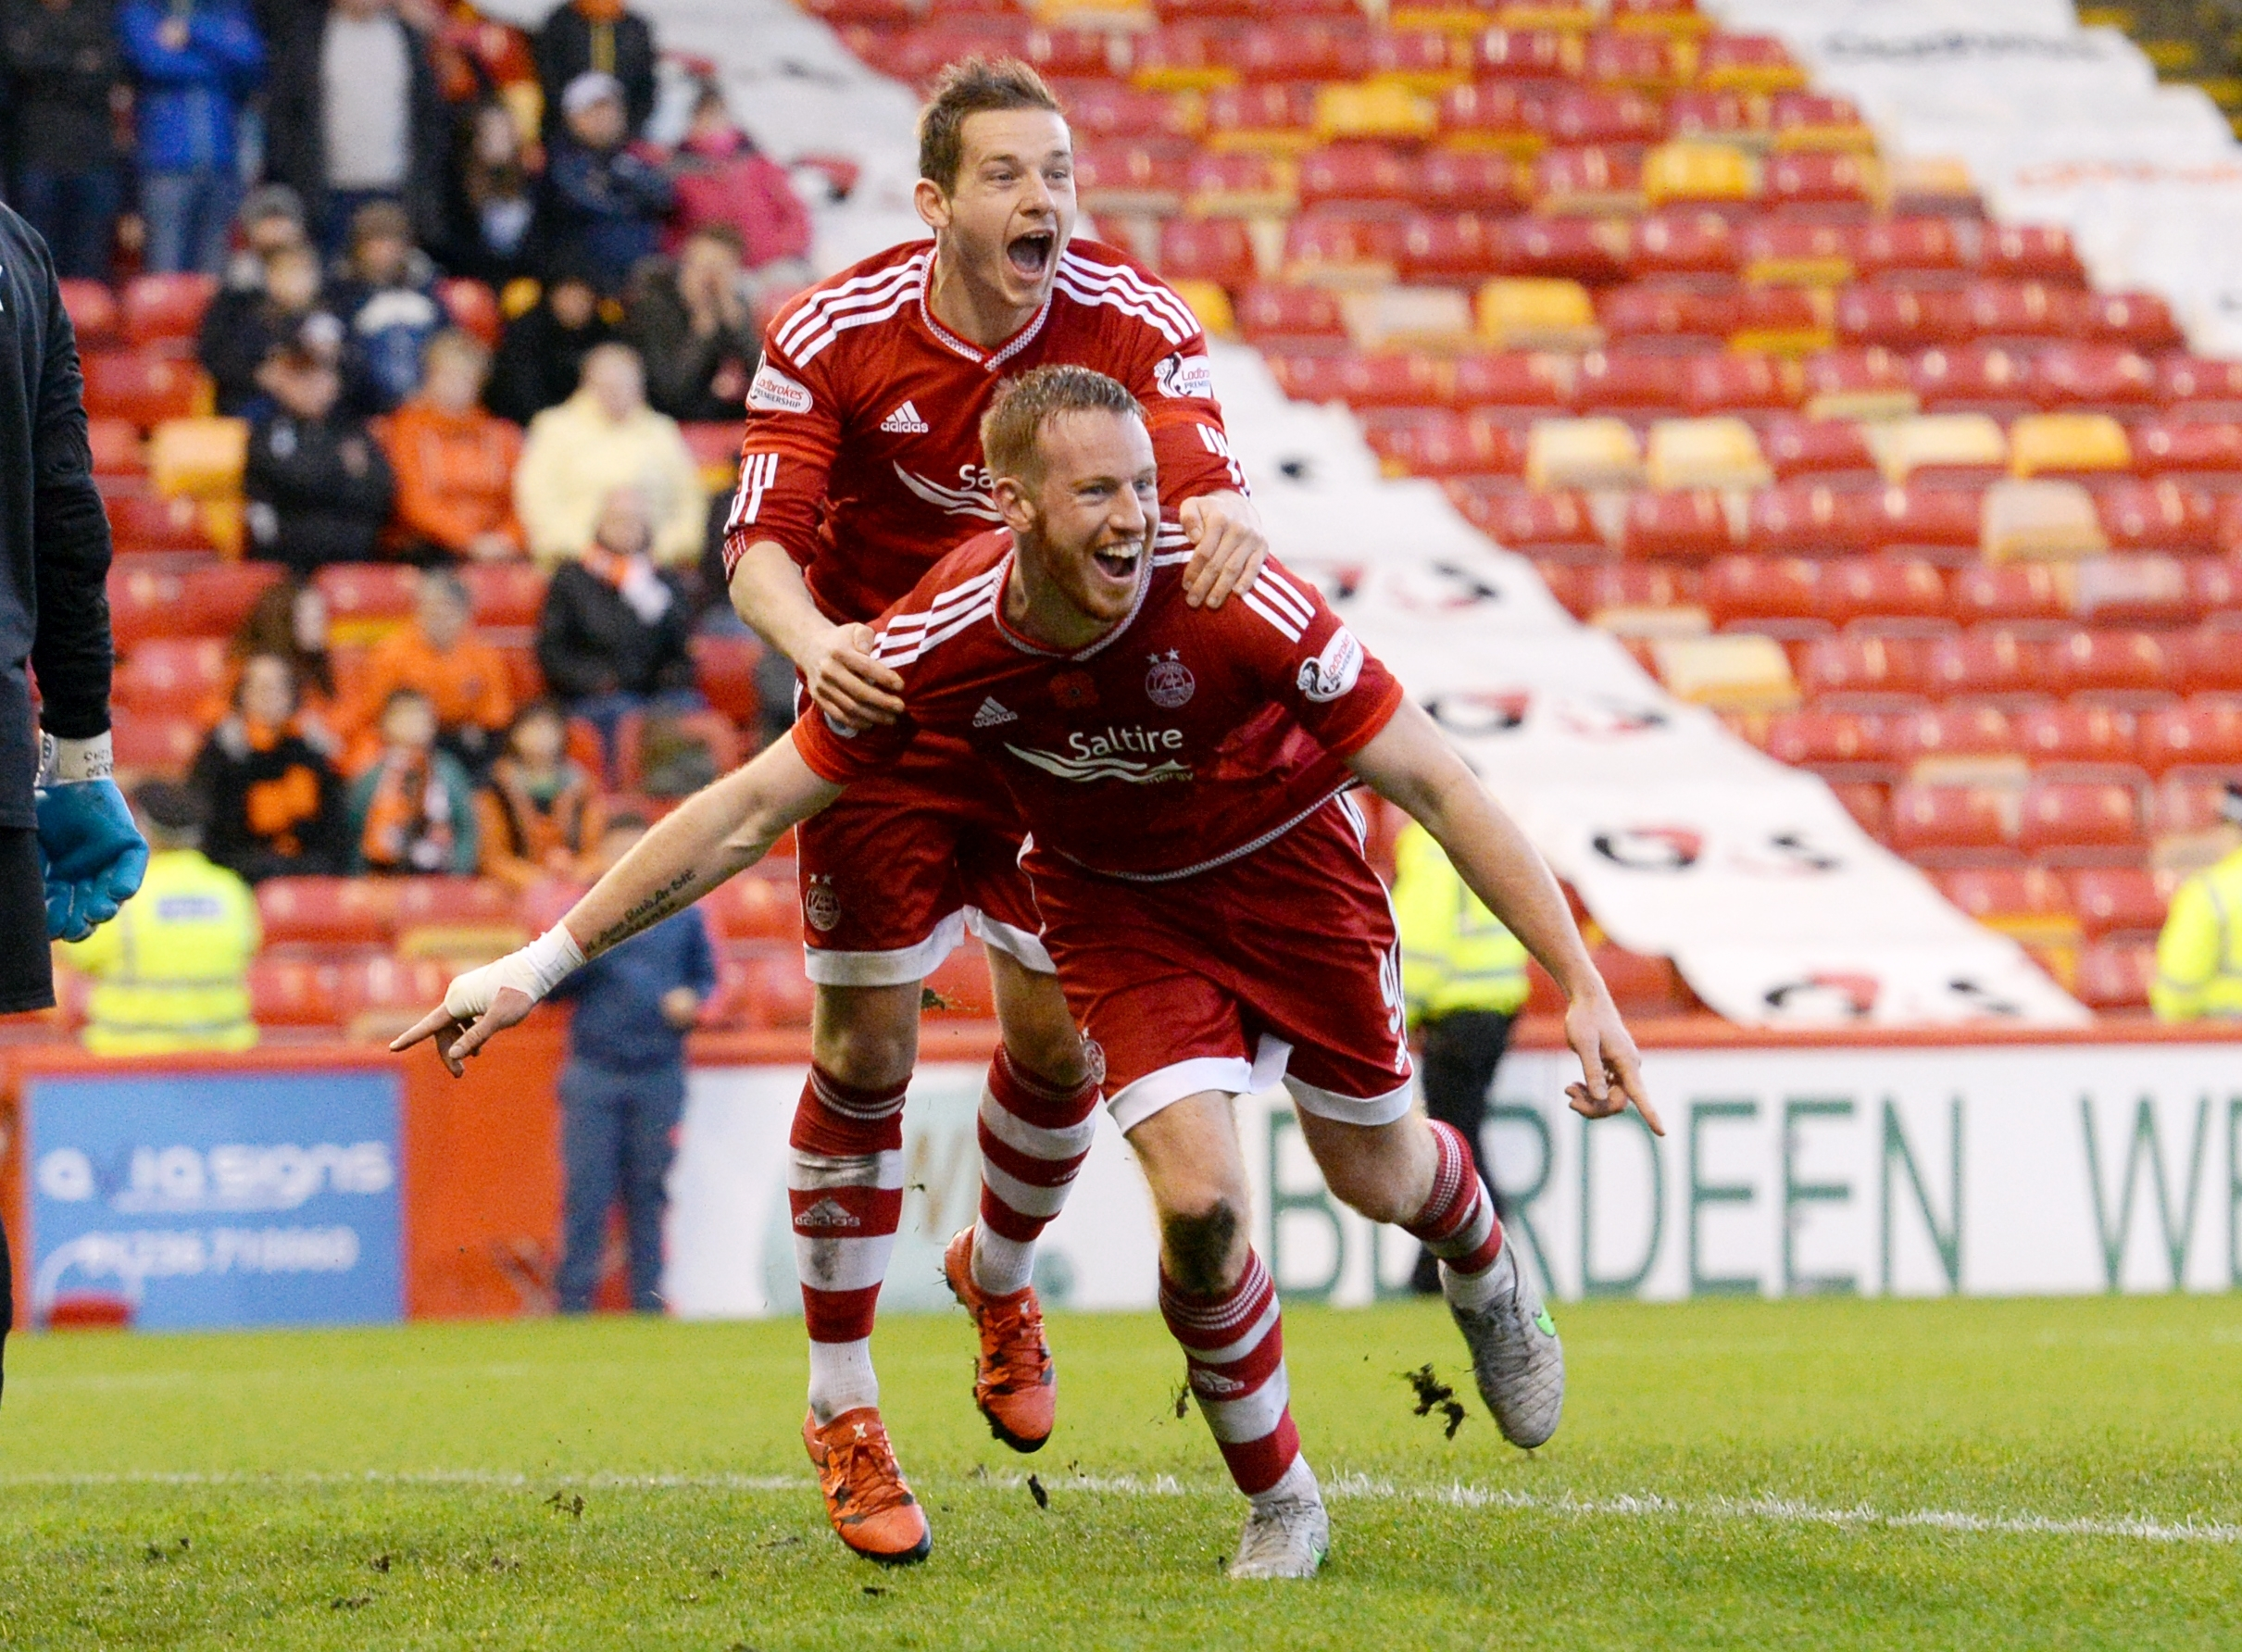 Rooney was on the scoresheet again against Dundee United